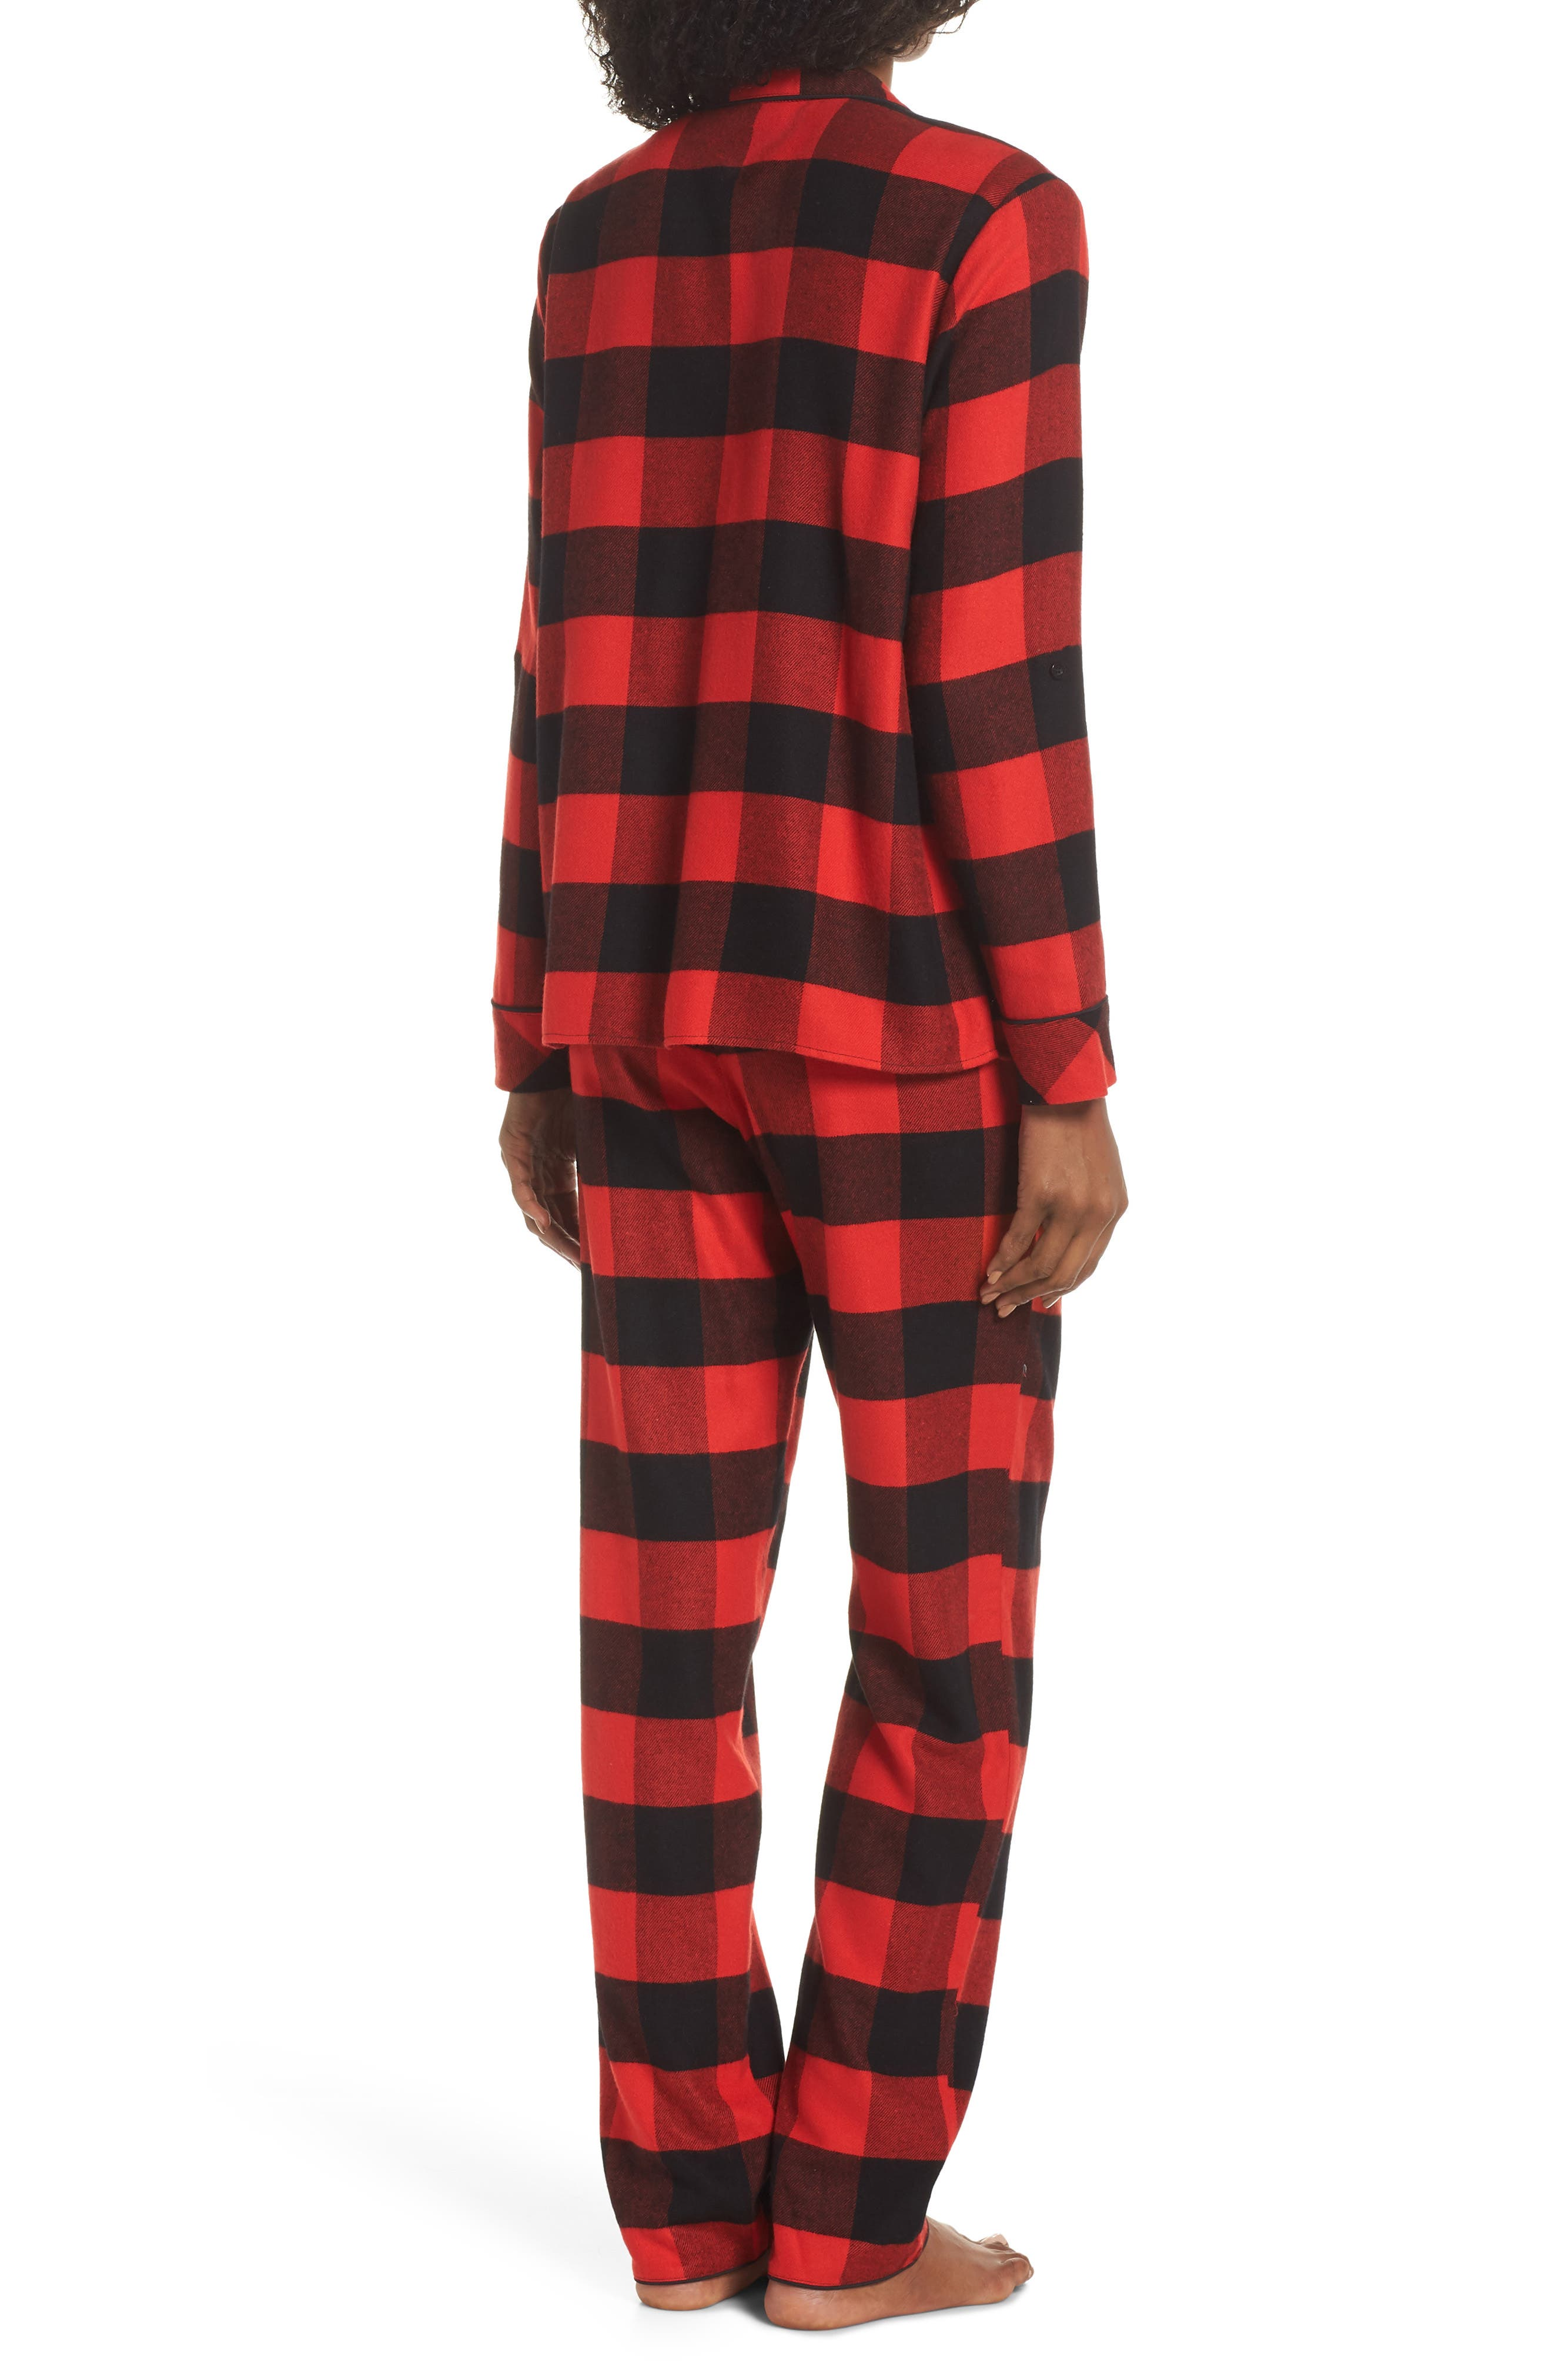 Lingerie Starlight Flannel Pajamas,                             Alternate thumbnail 2, color,                             RED BLOOM LARGE BUFFALO CHECK